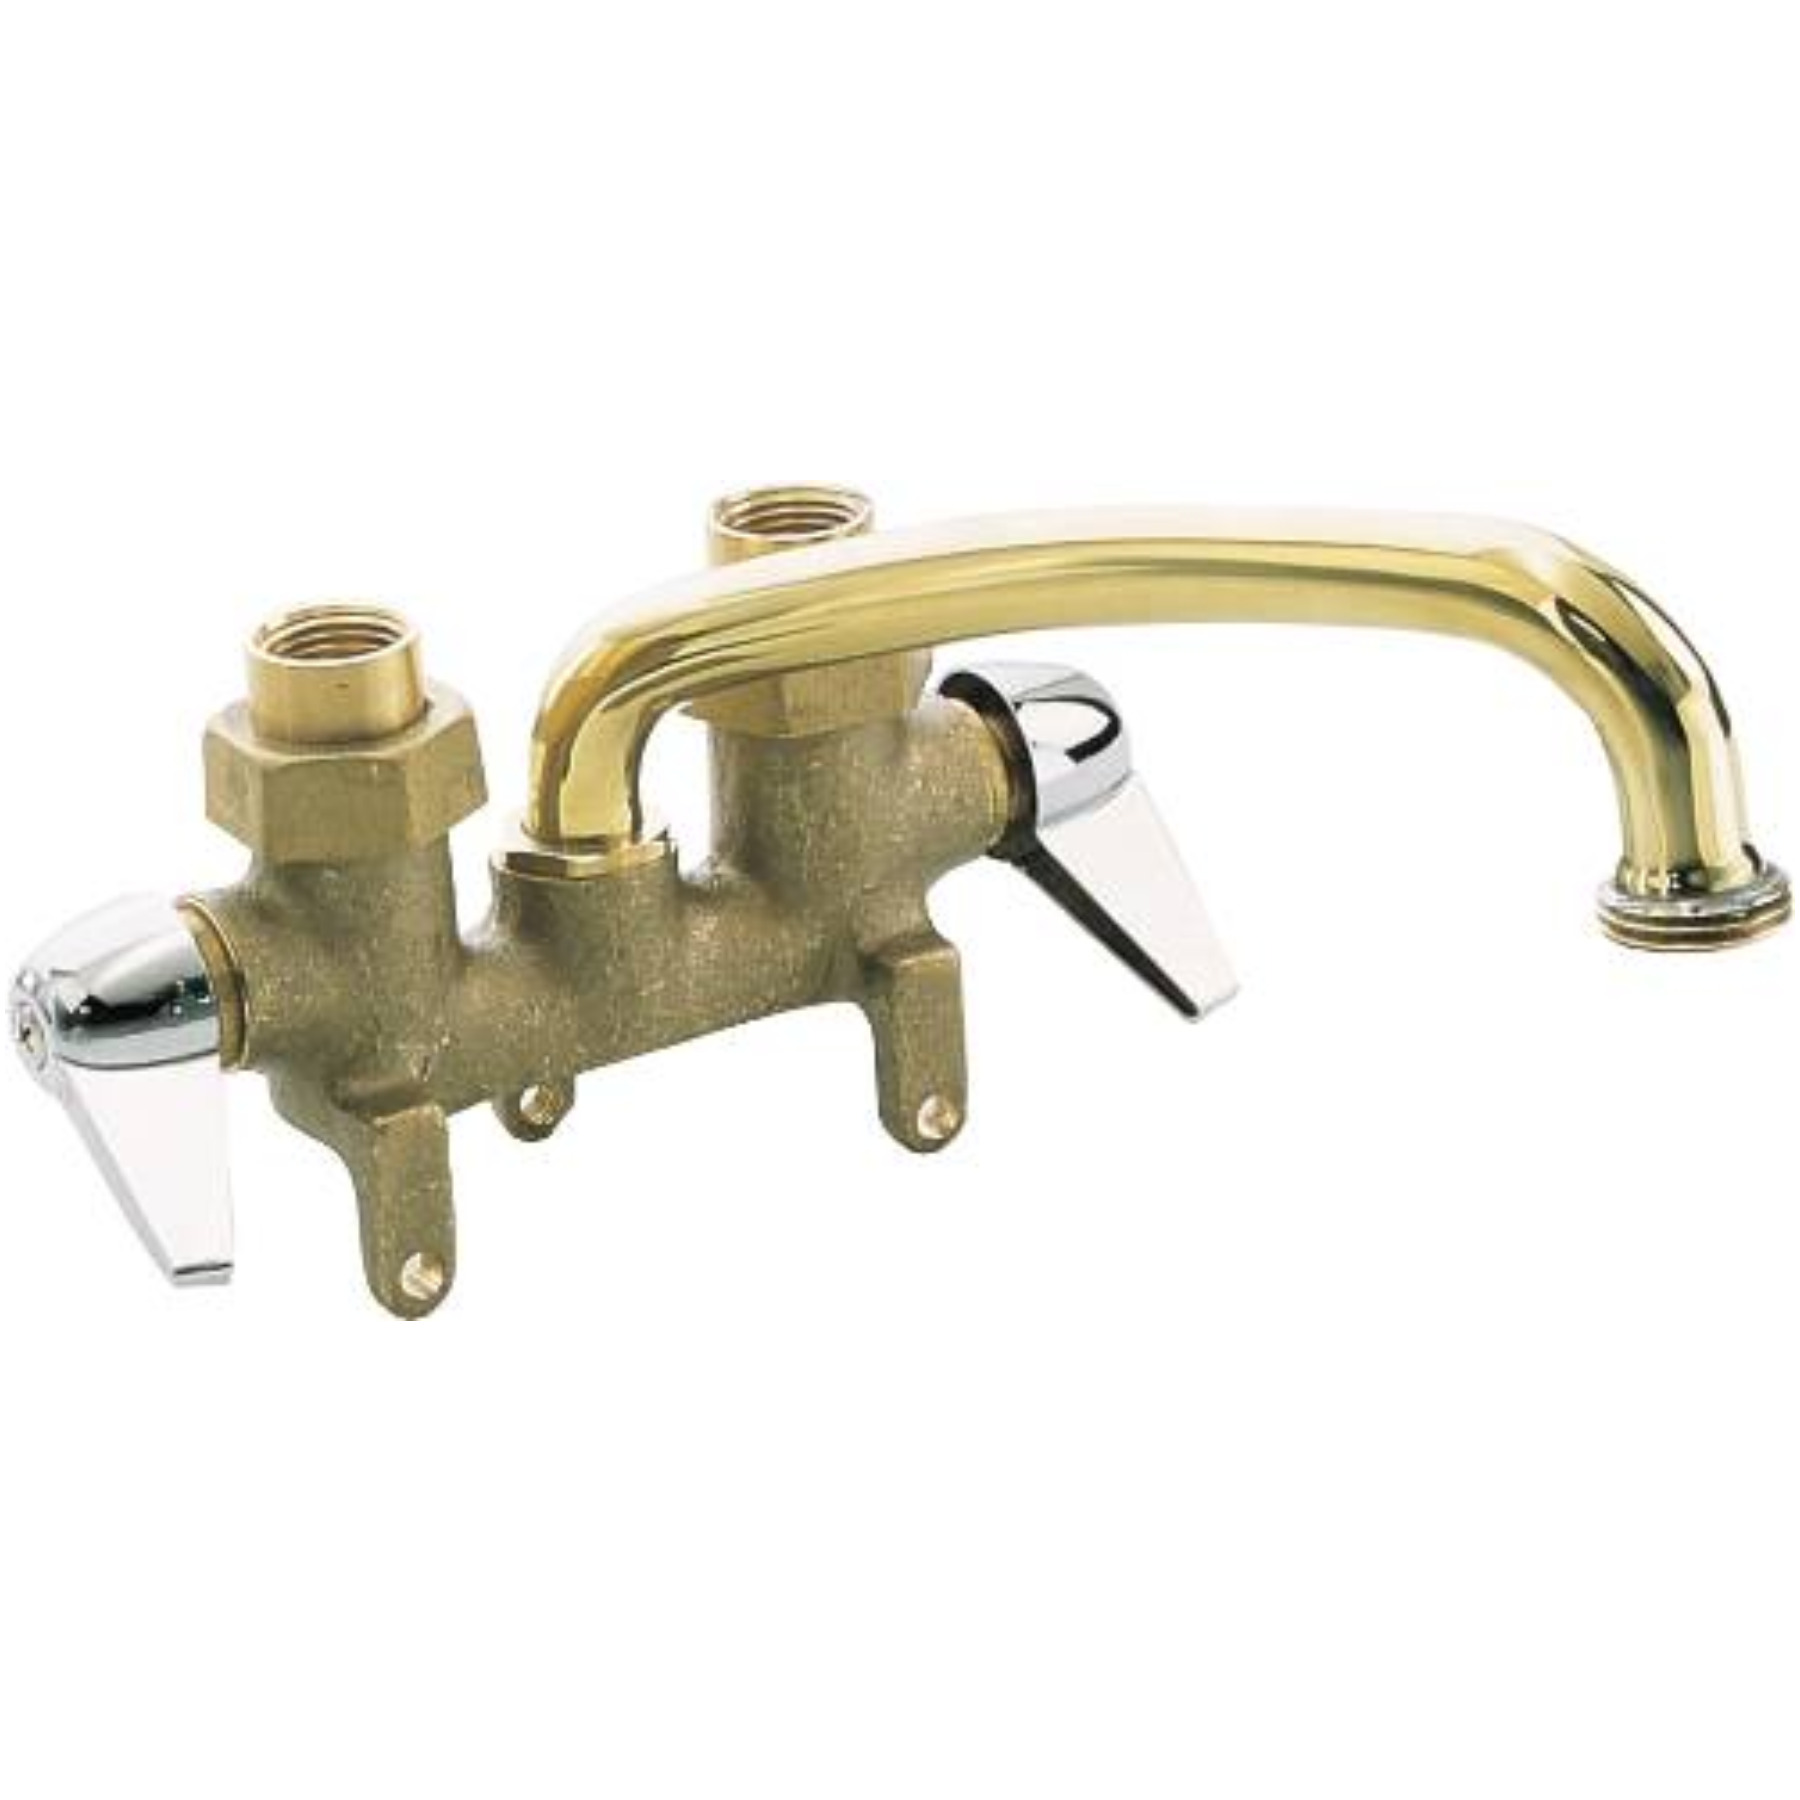 PROPLUS LAUNDRY TRAY FAUCET